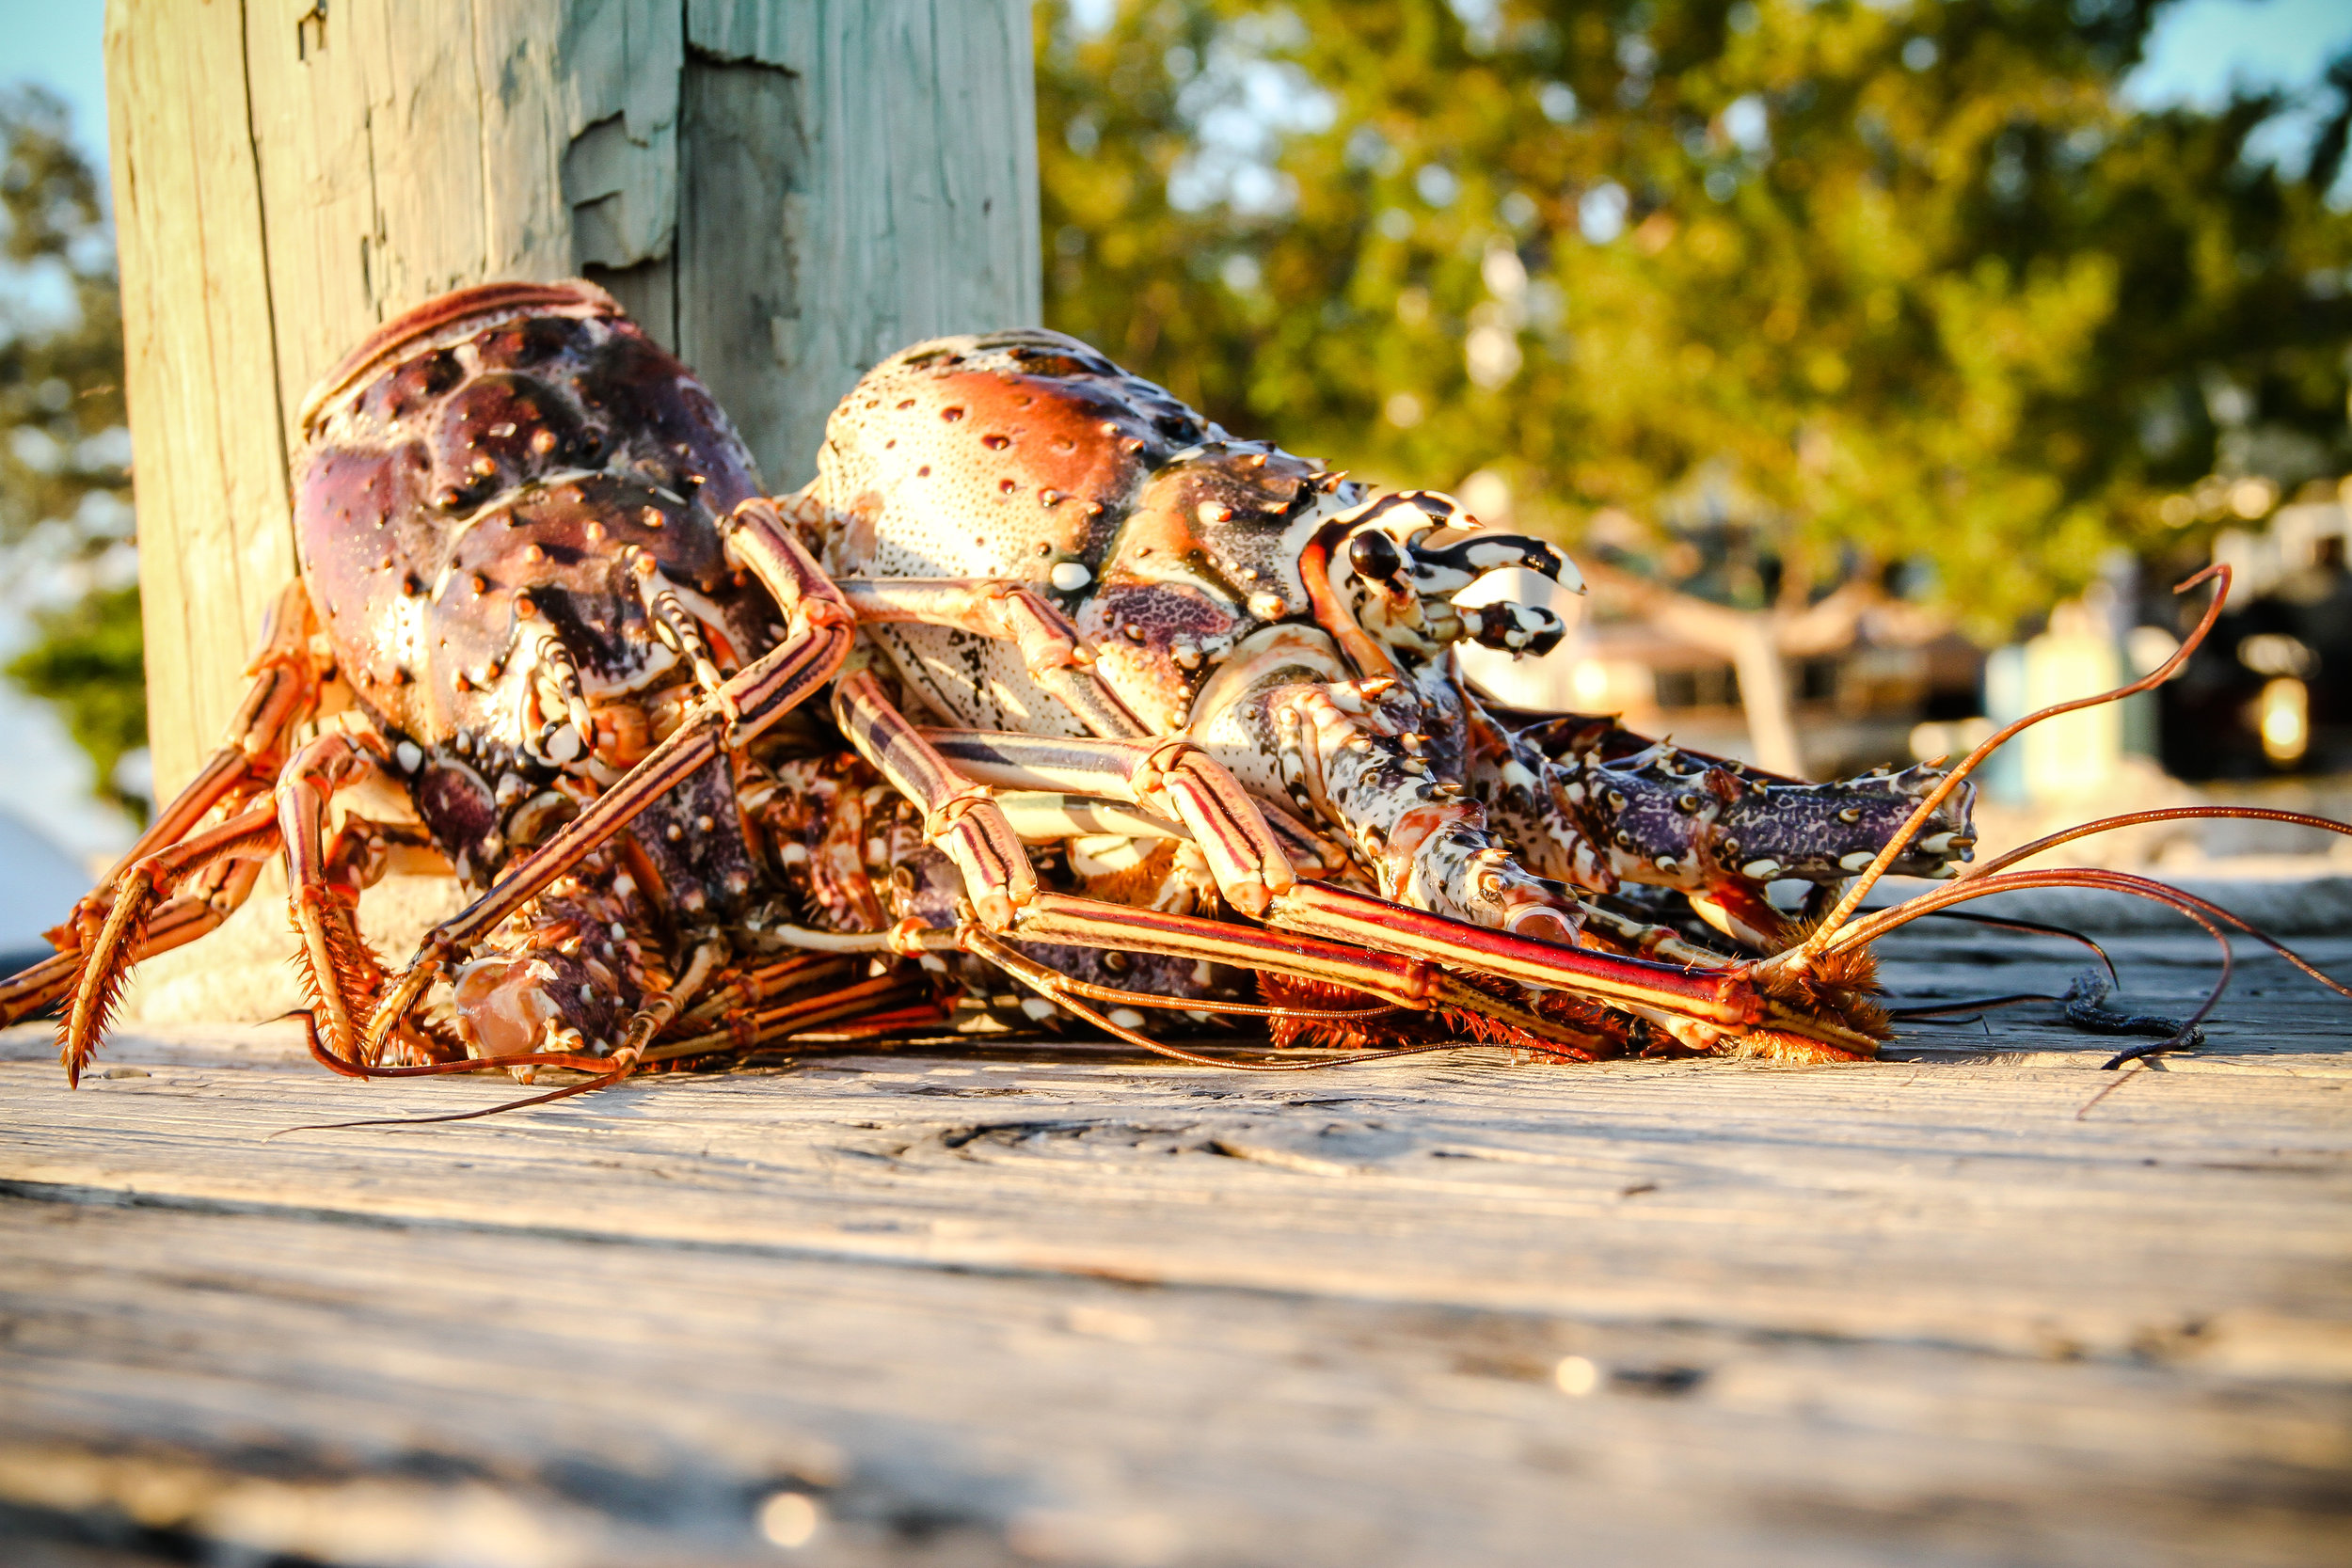 Did you know that up to 75% of all lobster hears are simply discarded. Today's recipes teach you how to use all of the product.